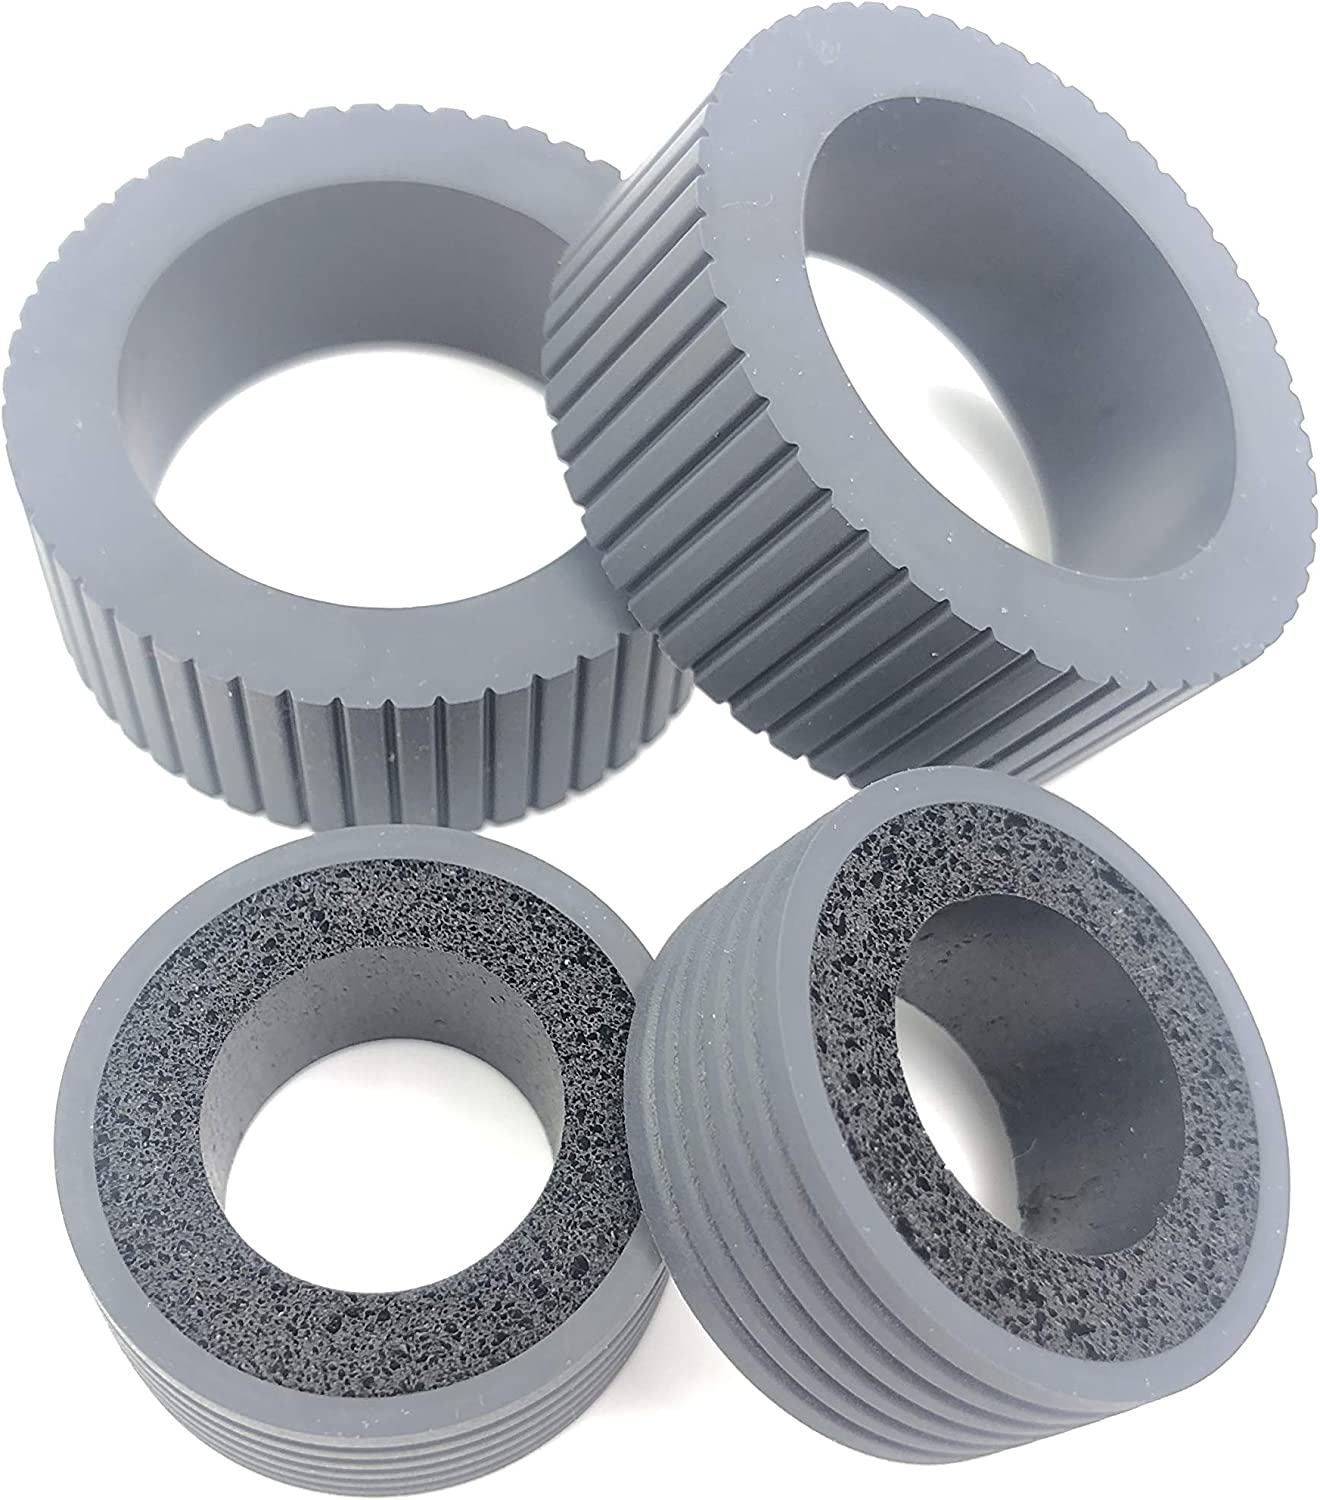 OKLILI PA03540-0001 PA03540-0002 Brake and Pick Pickup Roller Tire Kit Compatible with fi-6130 fi-6130Z fi-6140 fi-6140Z fi-6230 fi-6230Z fi-6125 fi-6225 ix500 ix1500 81BsnRrgpyL